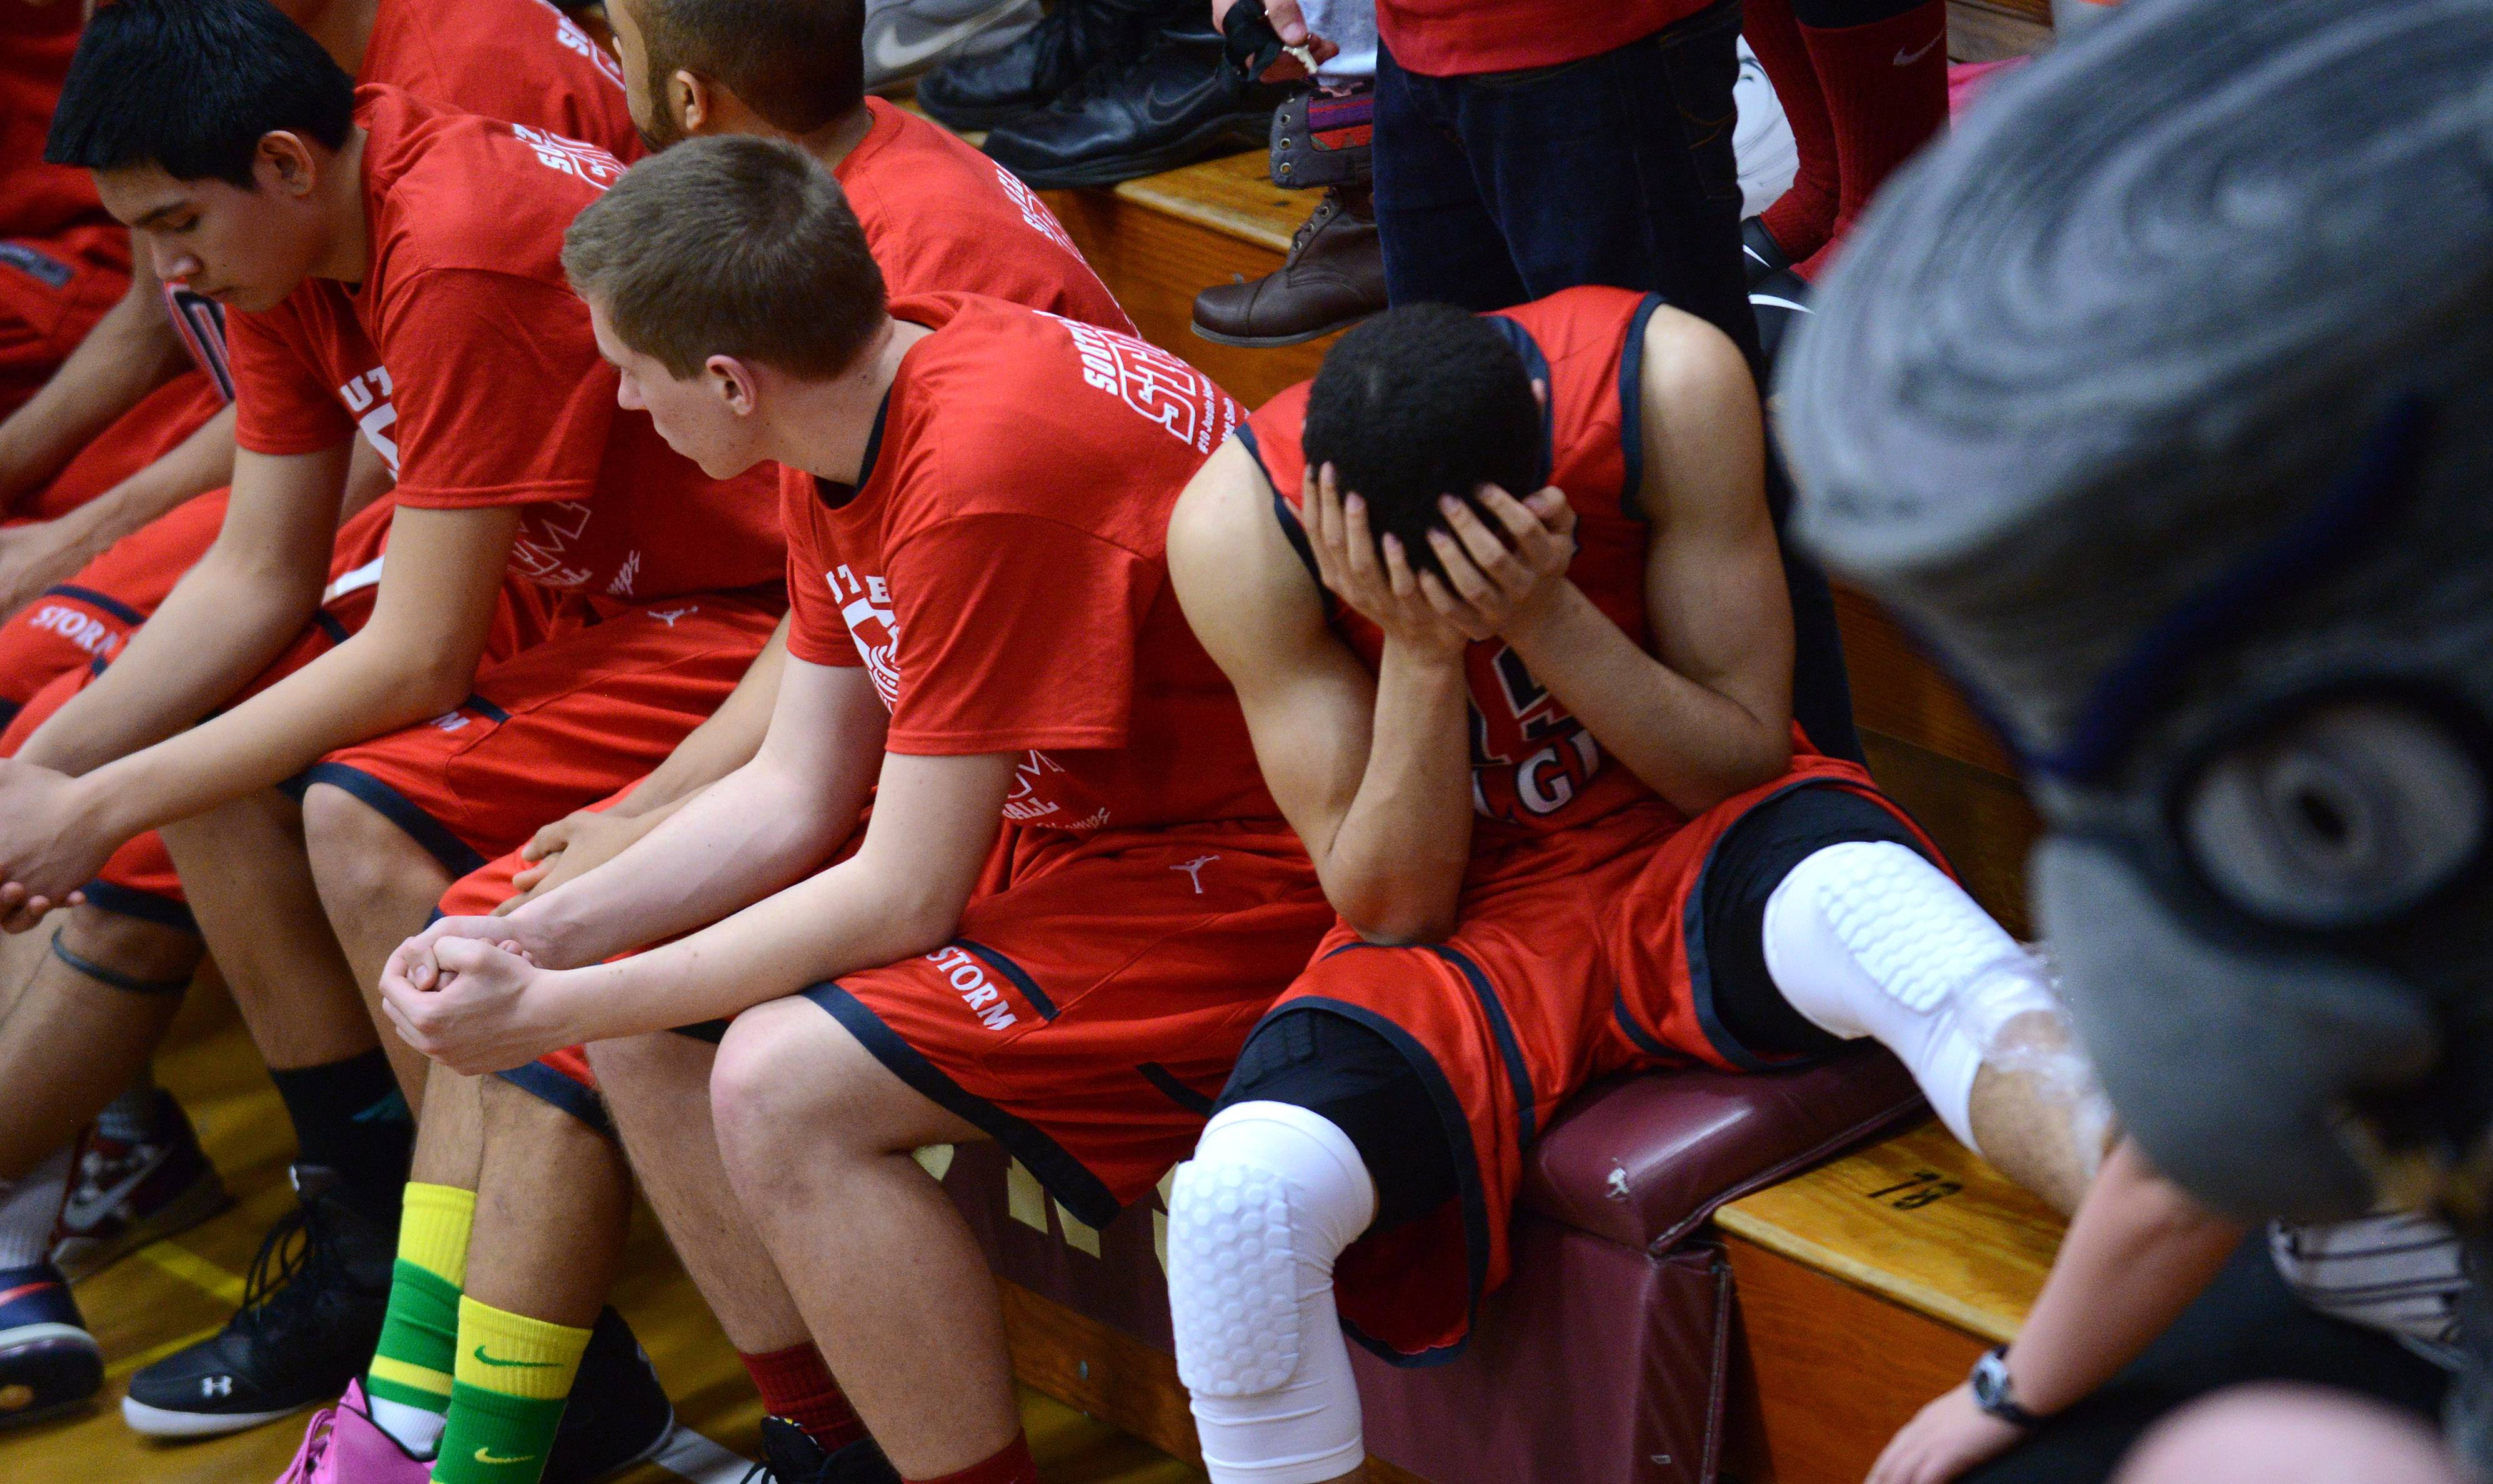 Players on the South Elgin bench, including an injured Matthew Smith wait out the final seconds of the game.